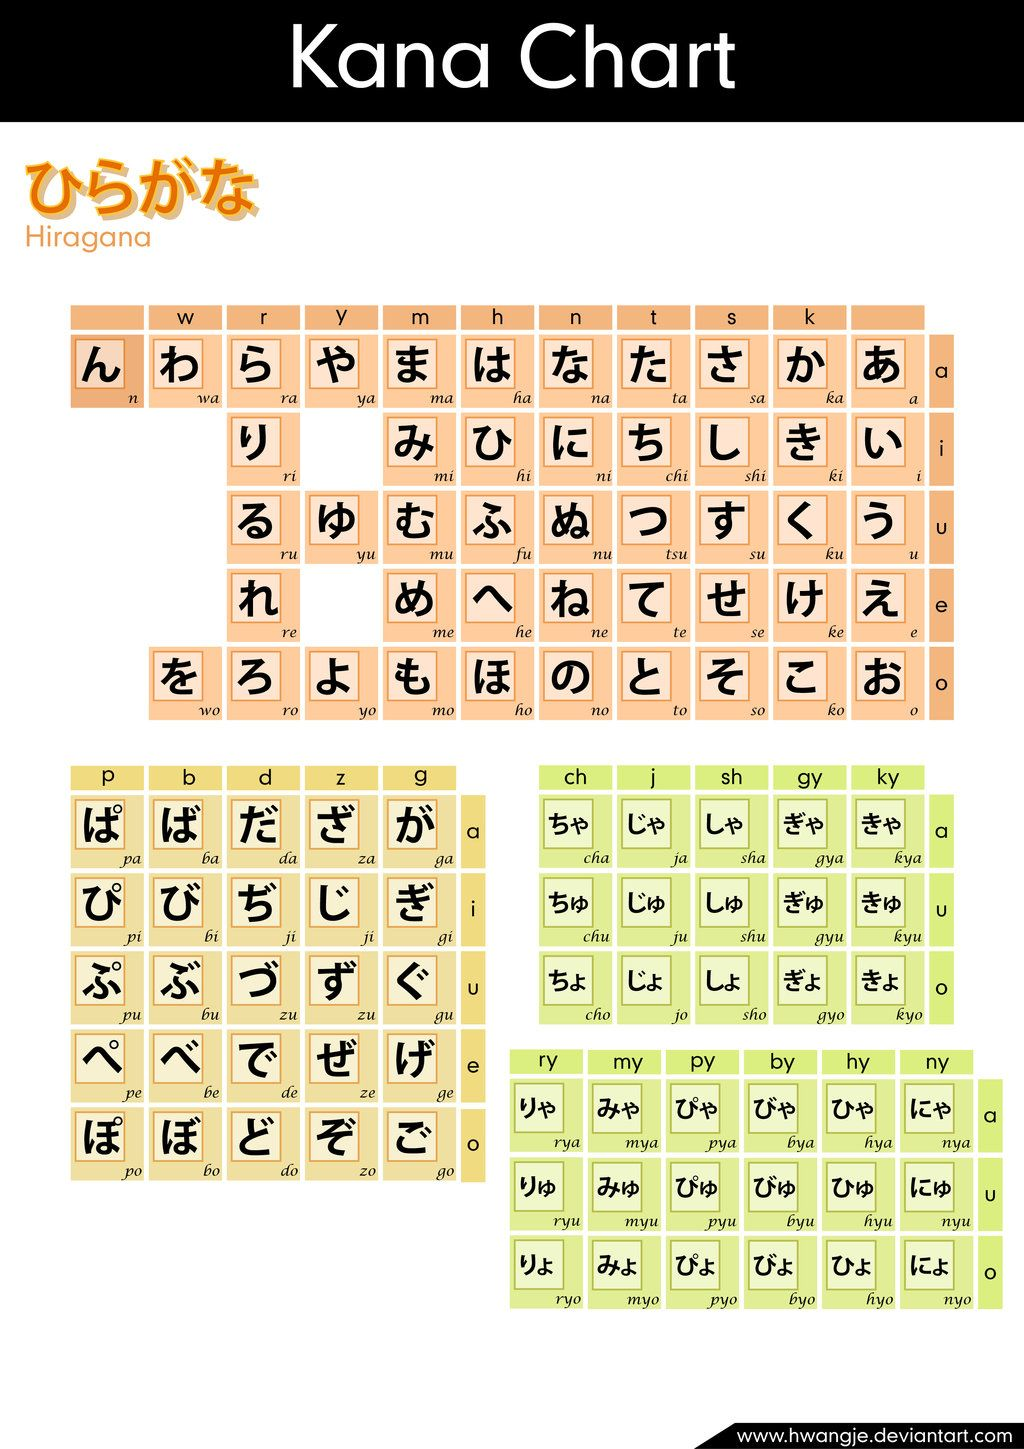 Hiragana Chart This Makes So Much More Sense Than The Text Book I Work Out Of